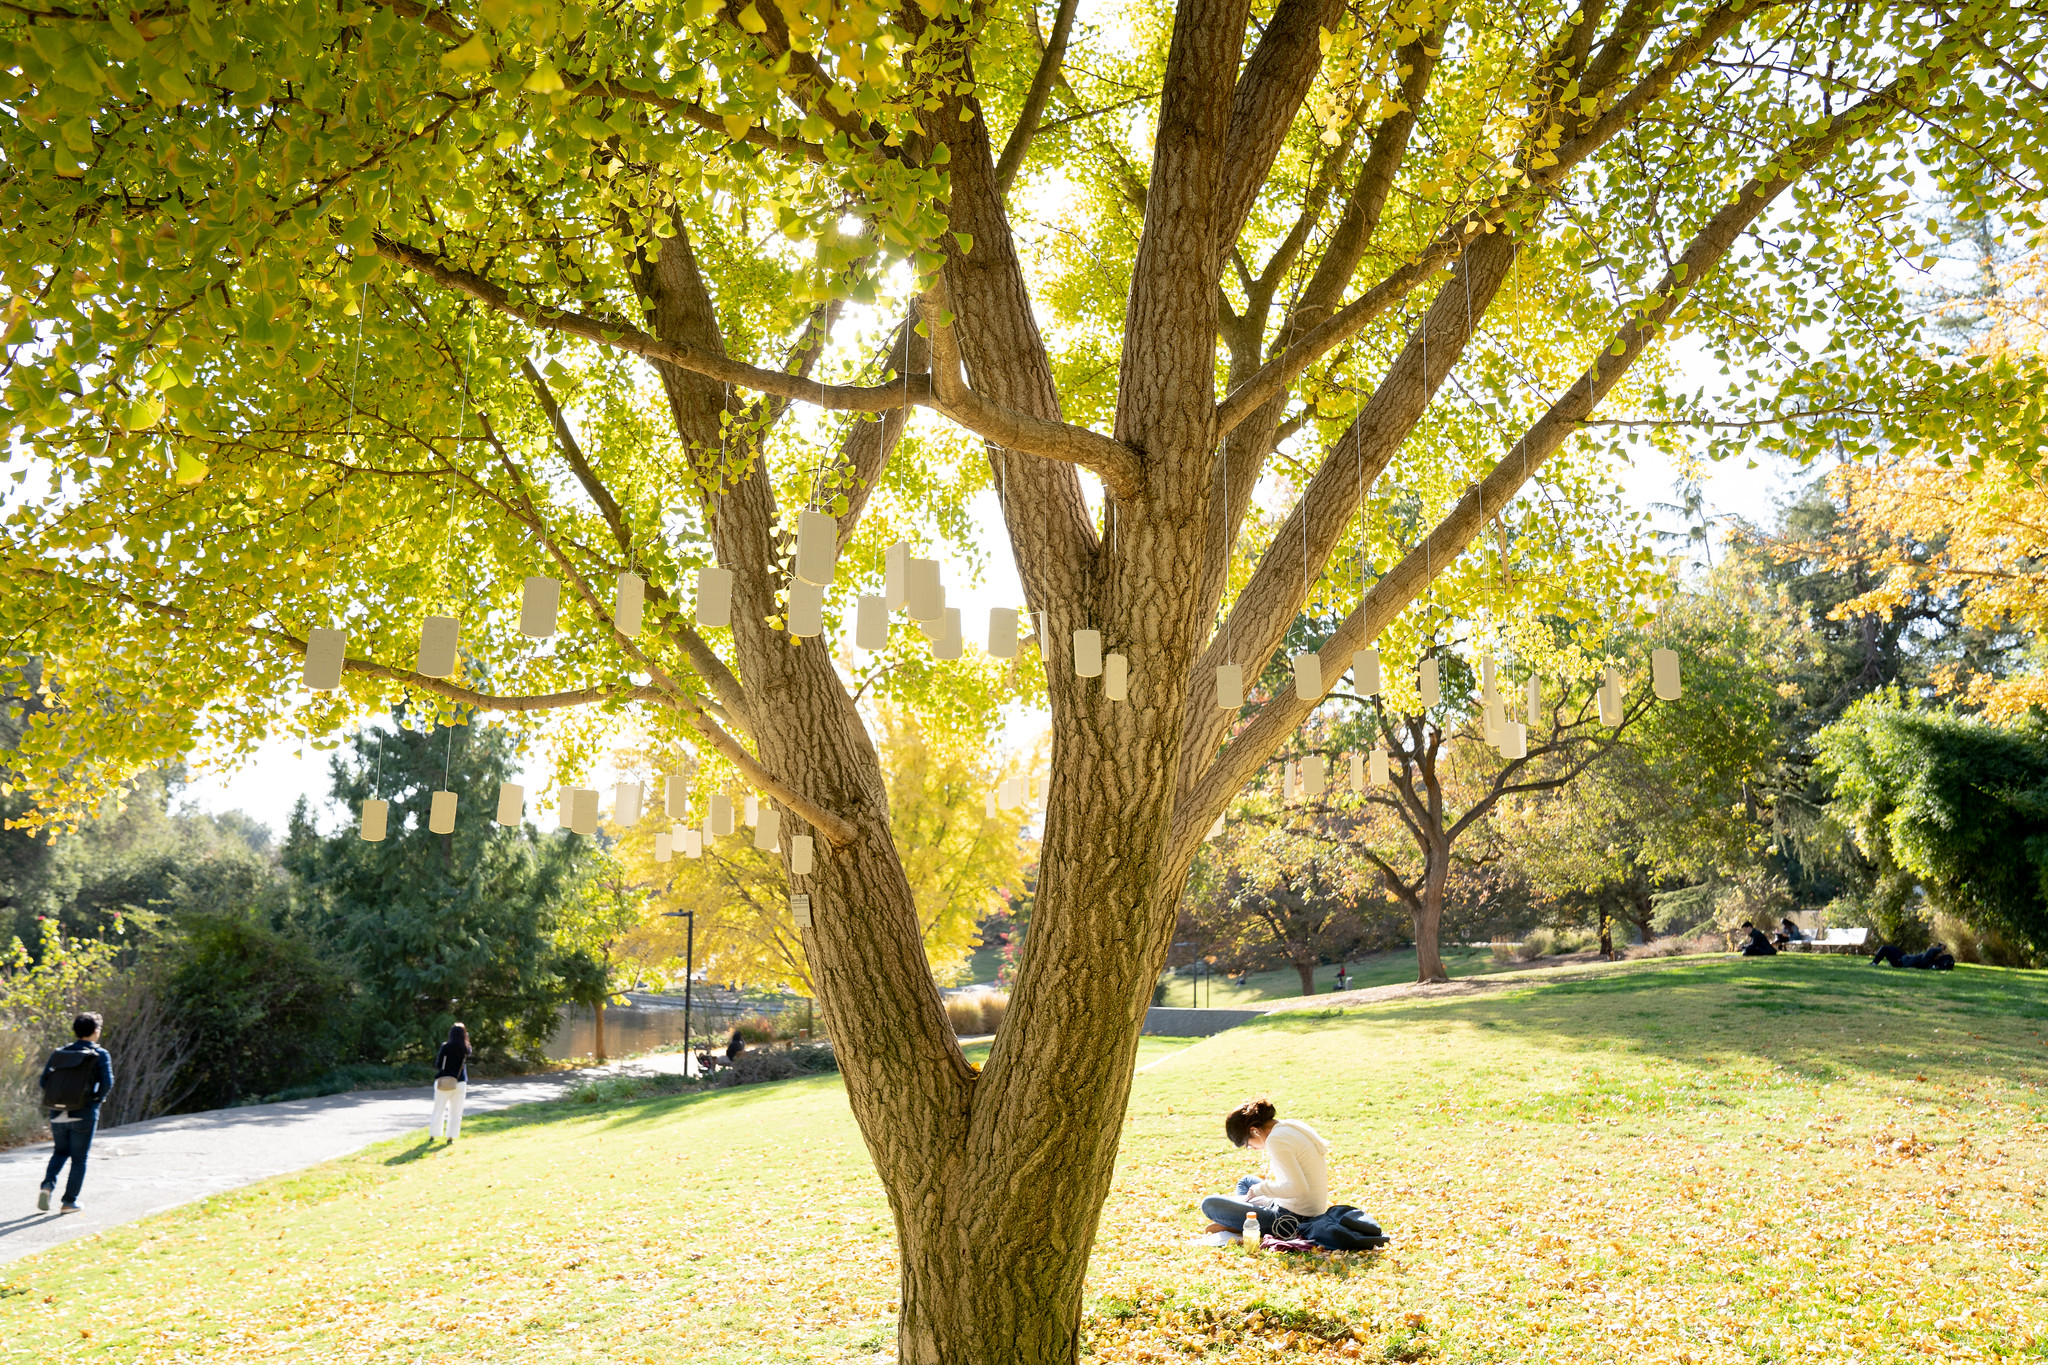 Image of student studying underneath a gingko tree and site of a sculpture installation entitled Addiction, 2019.